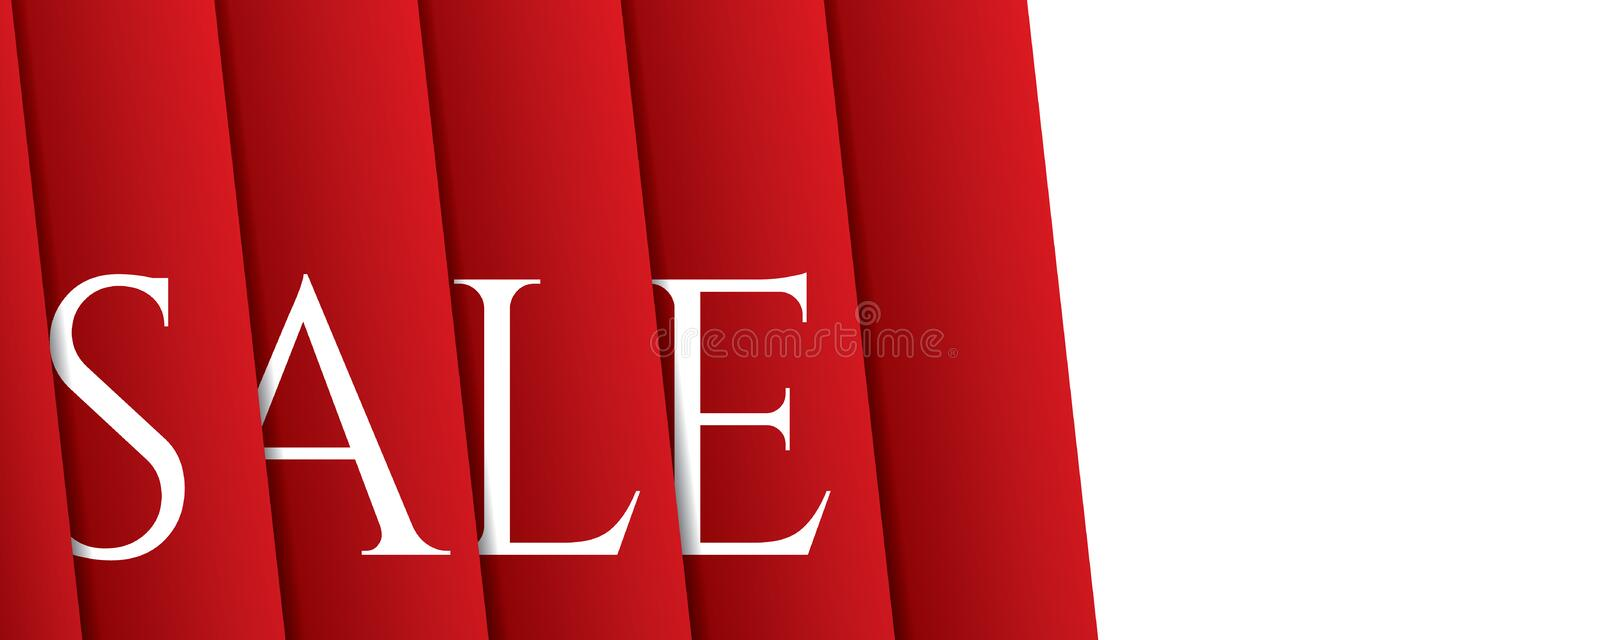 White sale hanging design on red curtain backdround for banner o. R poster. Sale and Discounts Concept. Vector illustration vector illustration